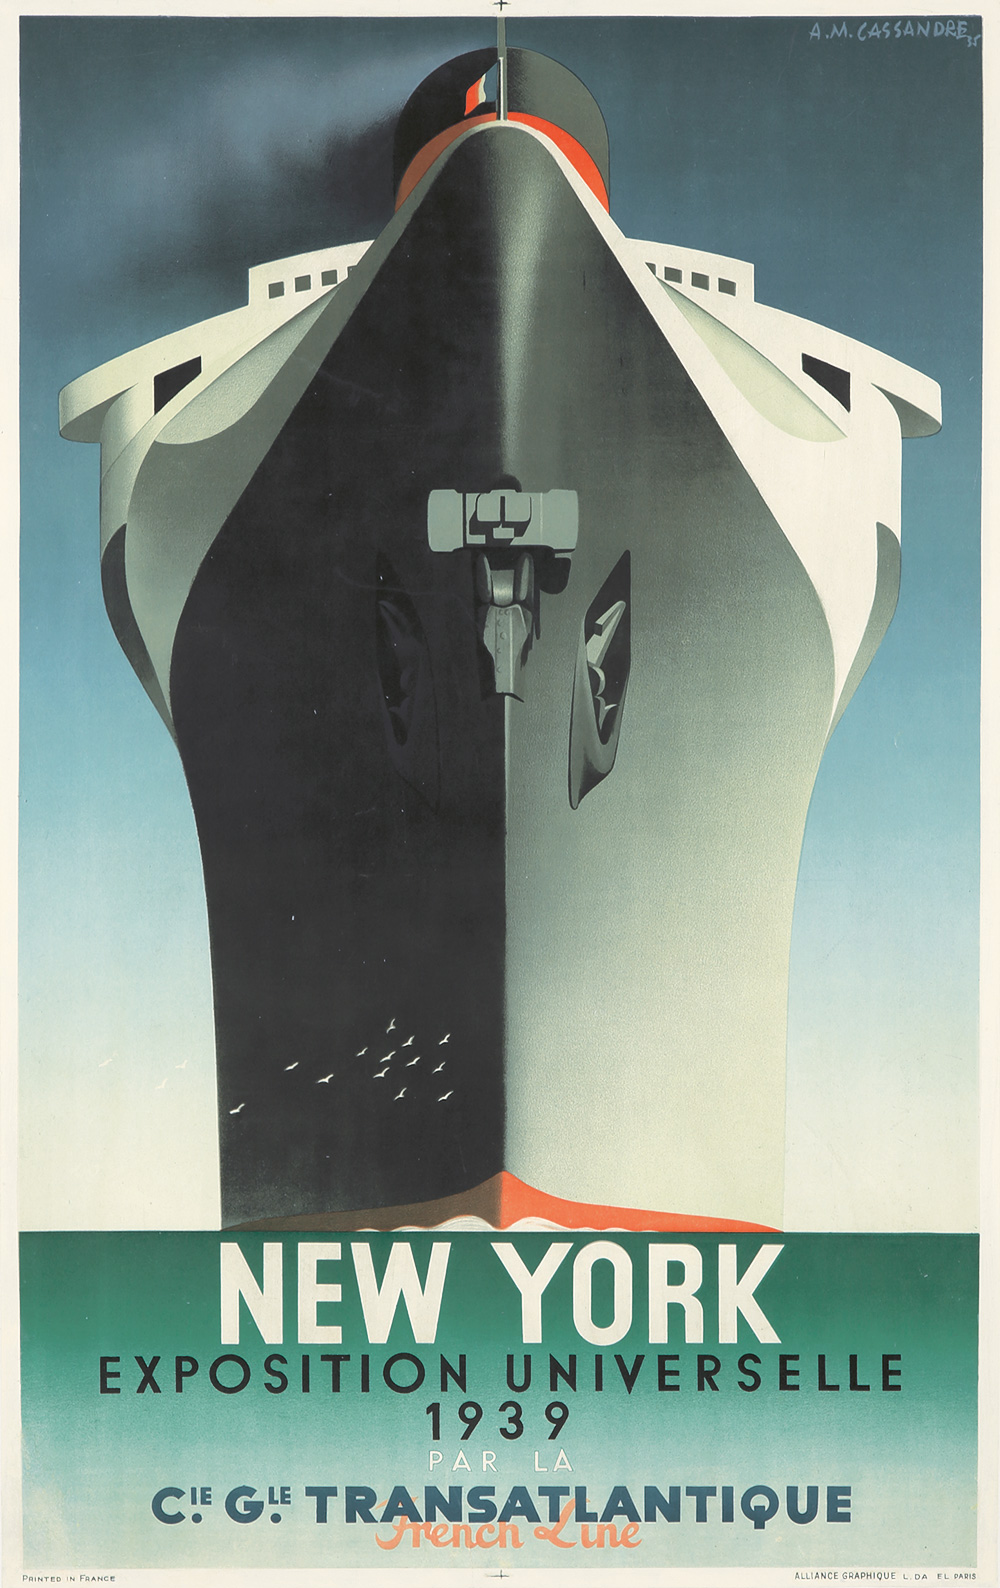 180. Normandie/New York/Exposition Universelle. 1939.